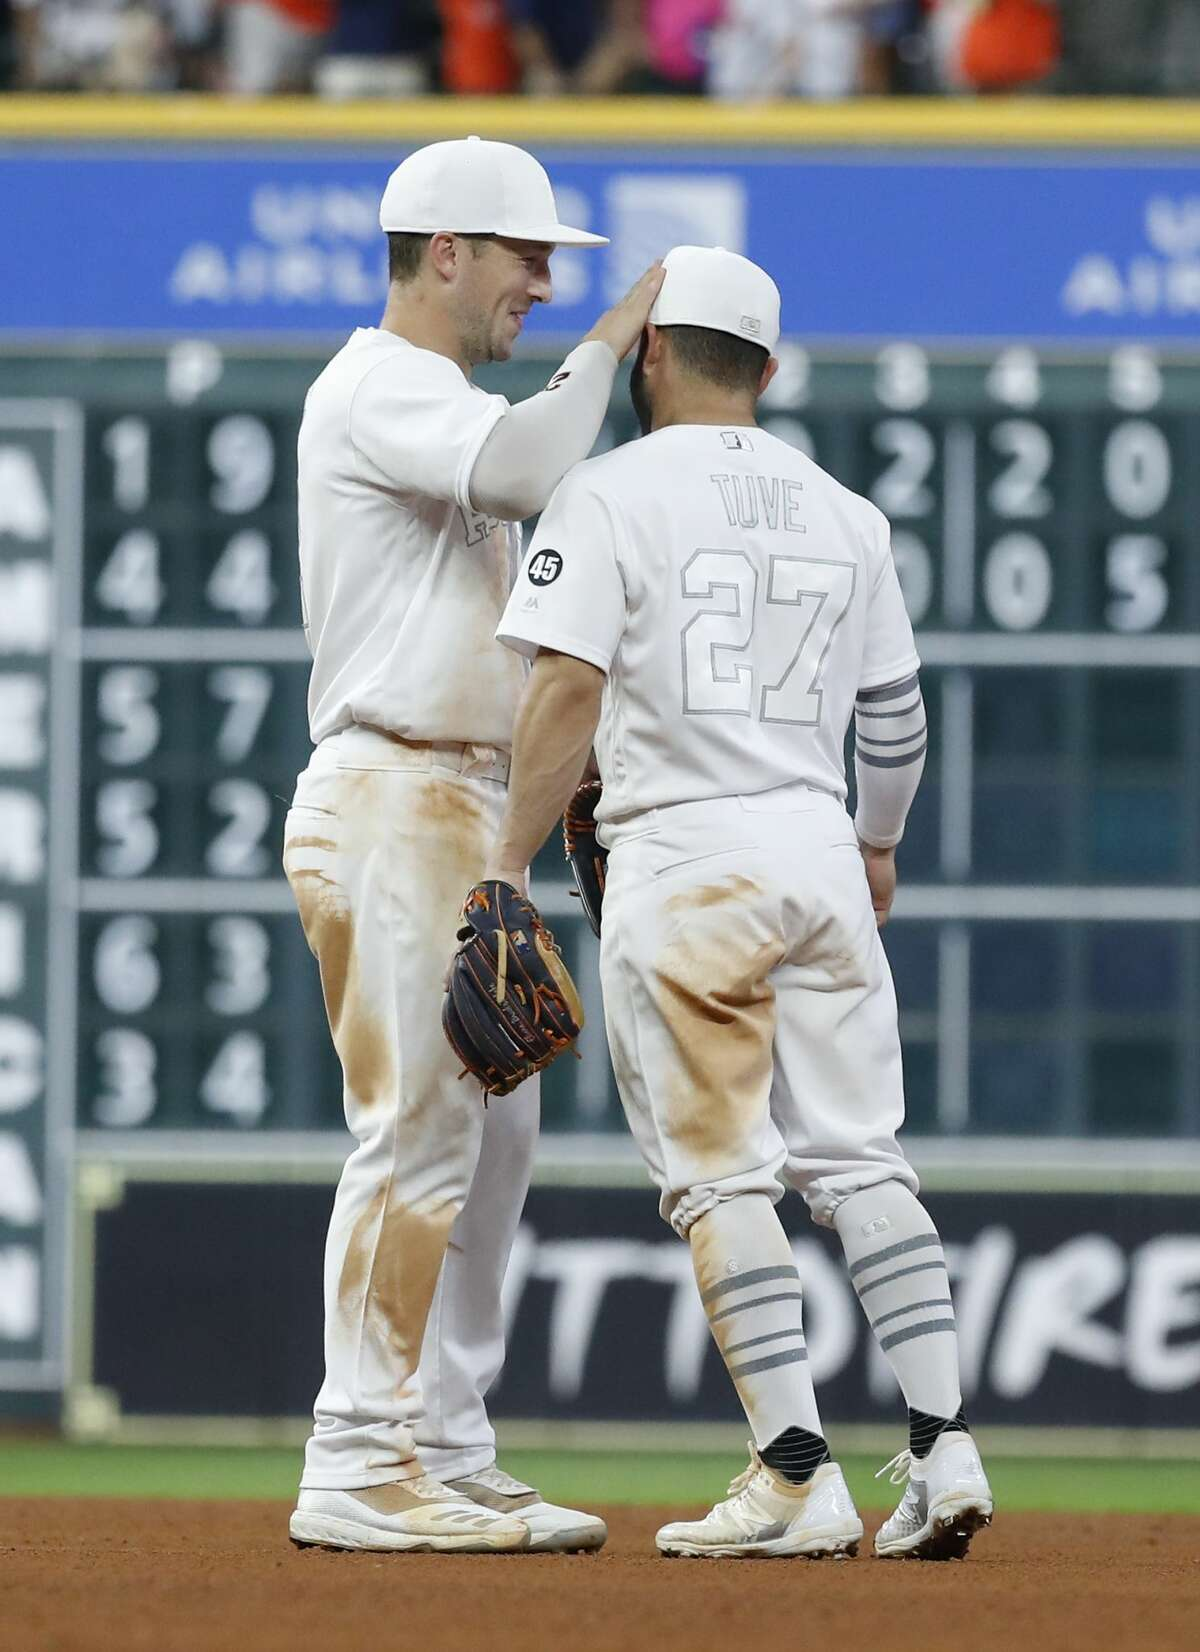 Houston Astros Alex Bregman (2) and Houston Astros Jose Altuve (27) celebrate the Astros win over the Los Angeles Angels 5-2 after the ninth inning of an MLB game at Minute Maid Park, Saturday, August 24, 2019.